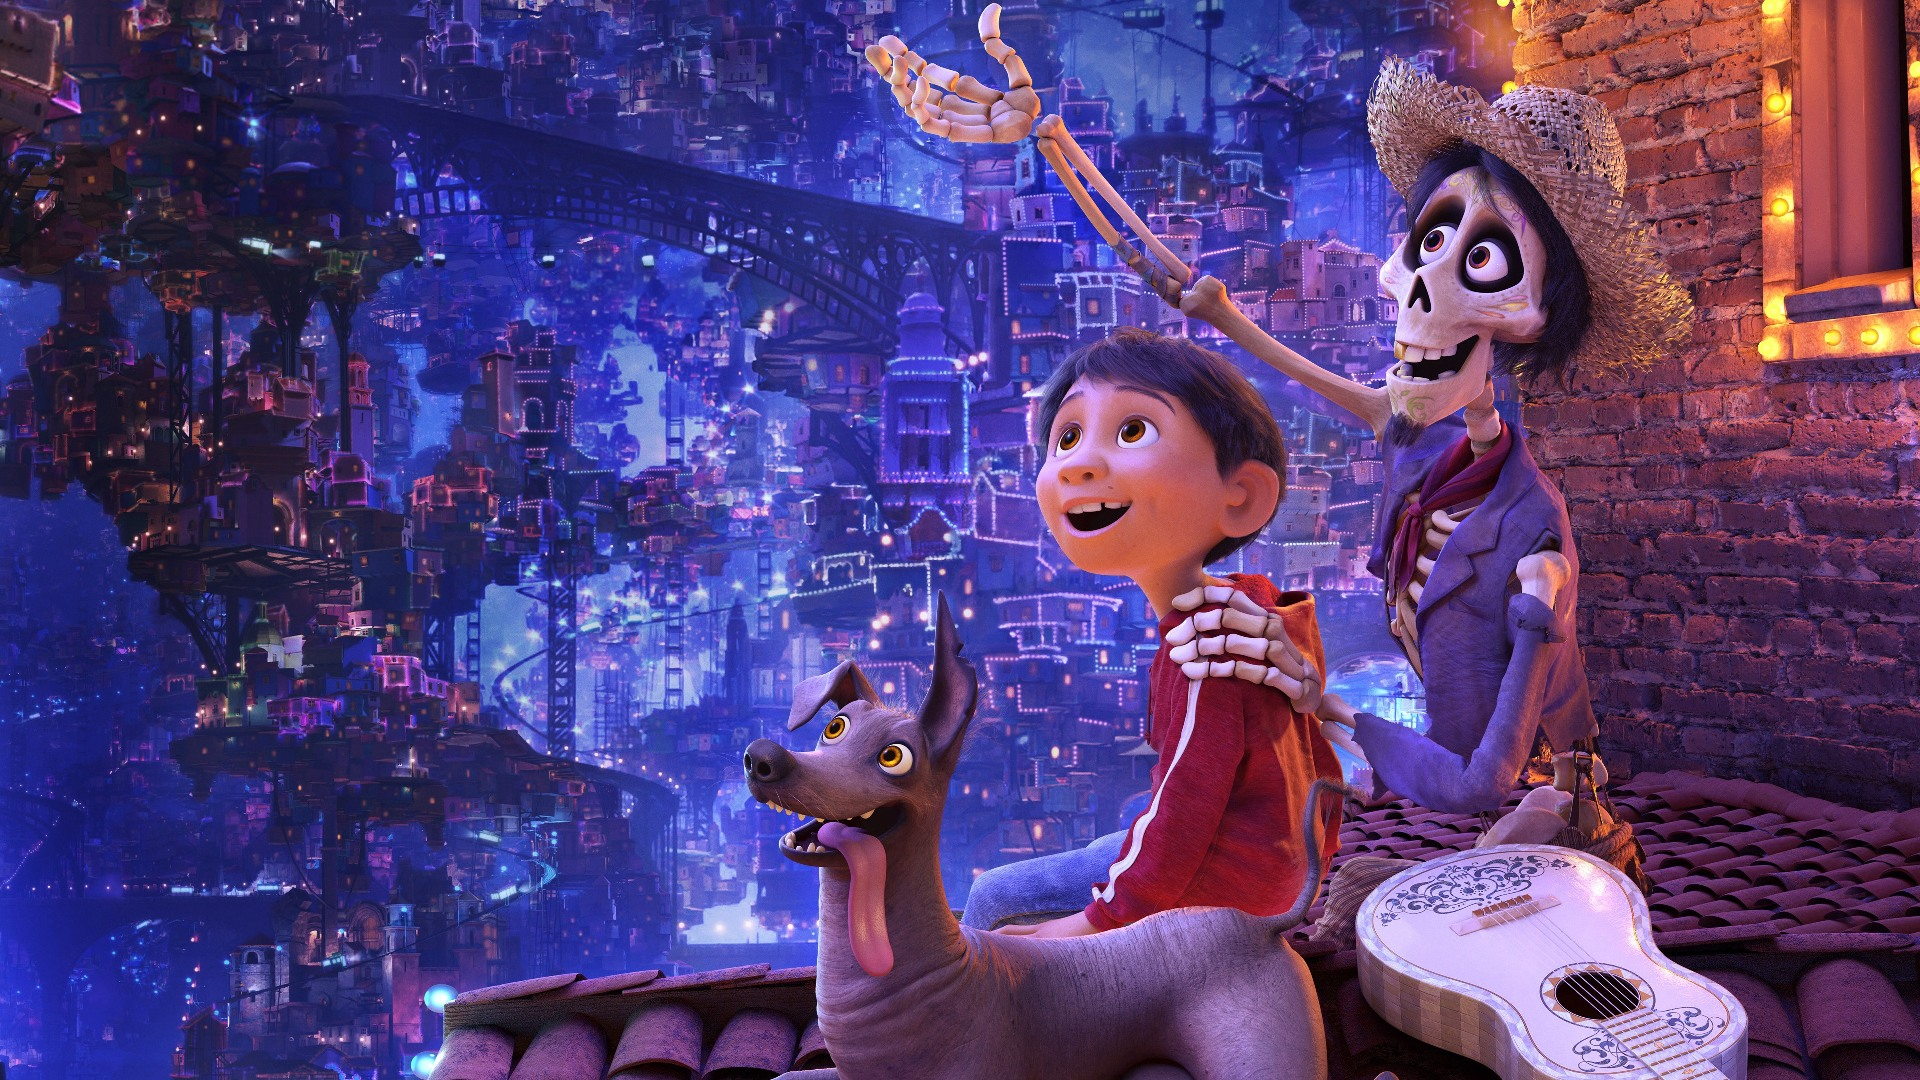 Disney Pixar's COCO - Special screening in Spanish!